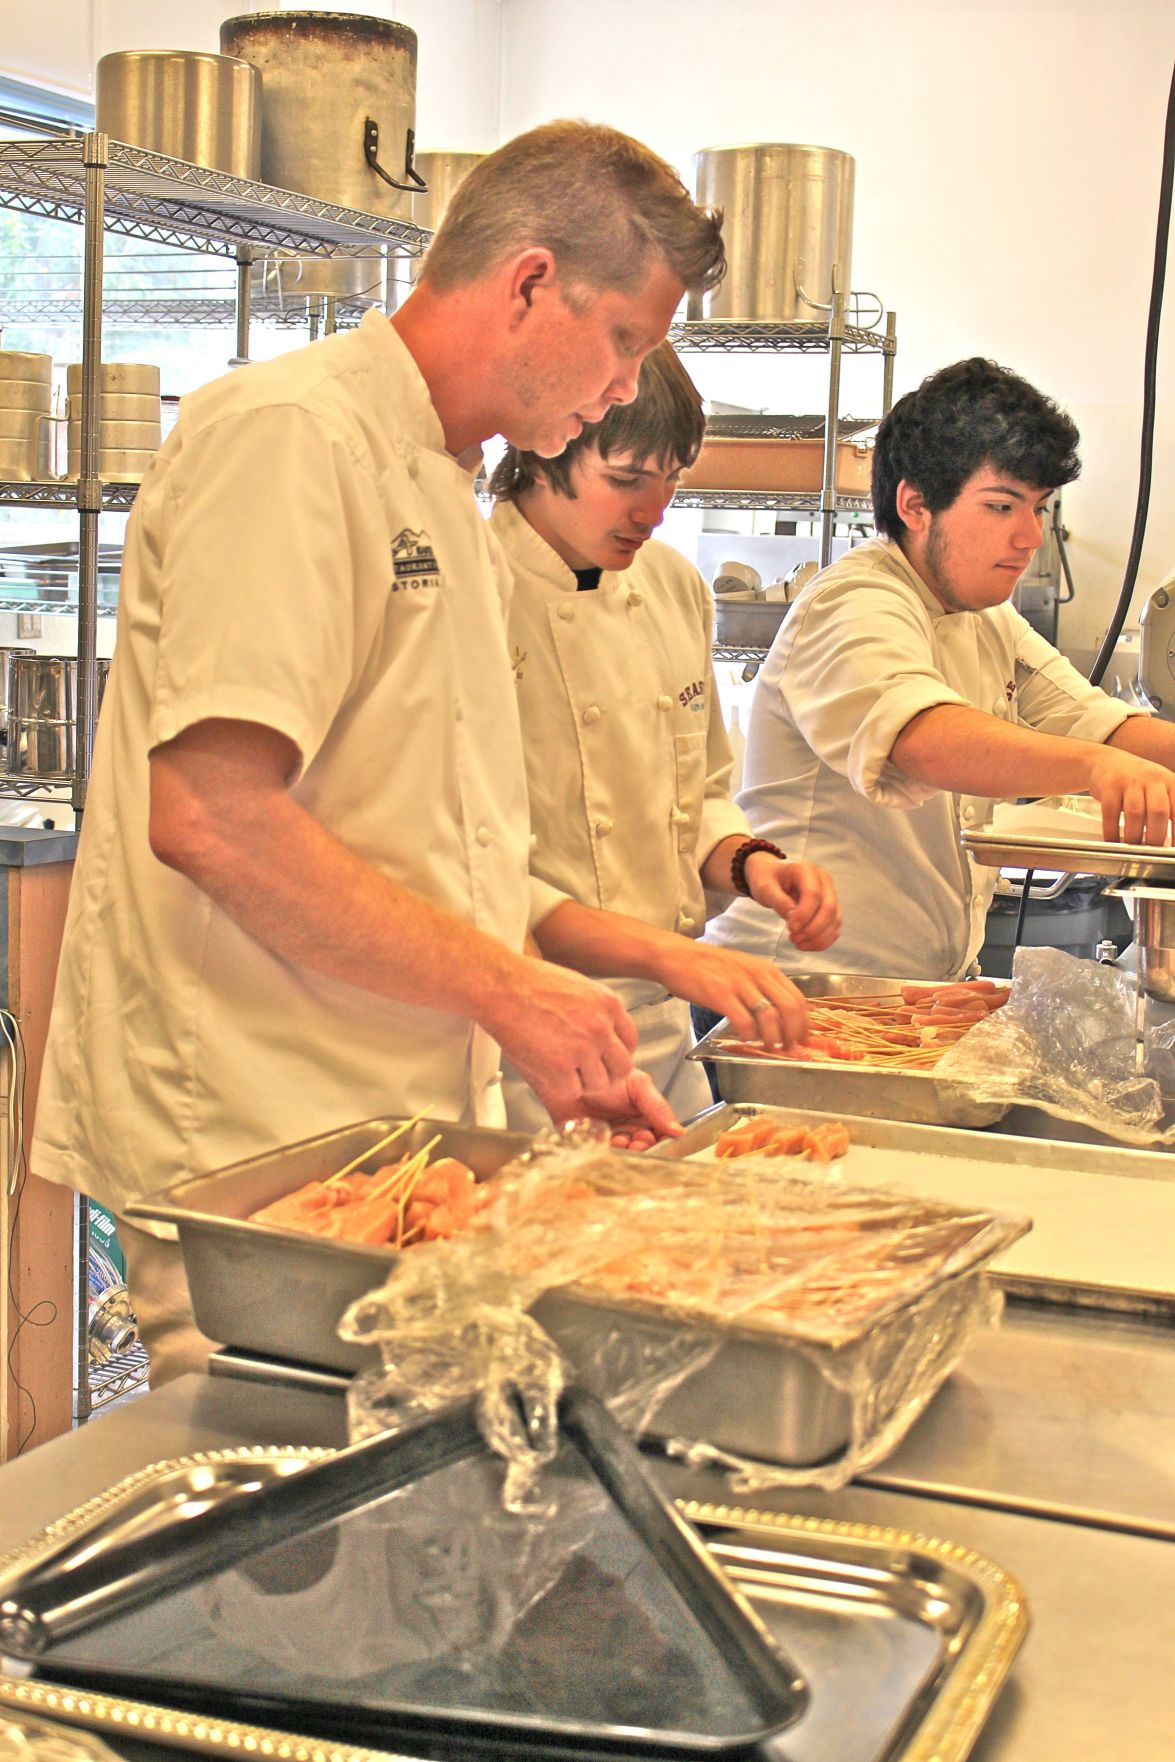 There's a new chef cooking in Seaside High's kitchen